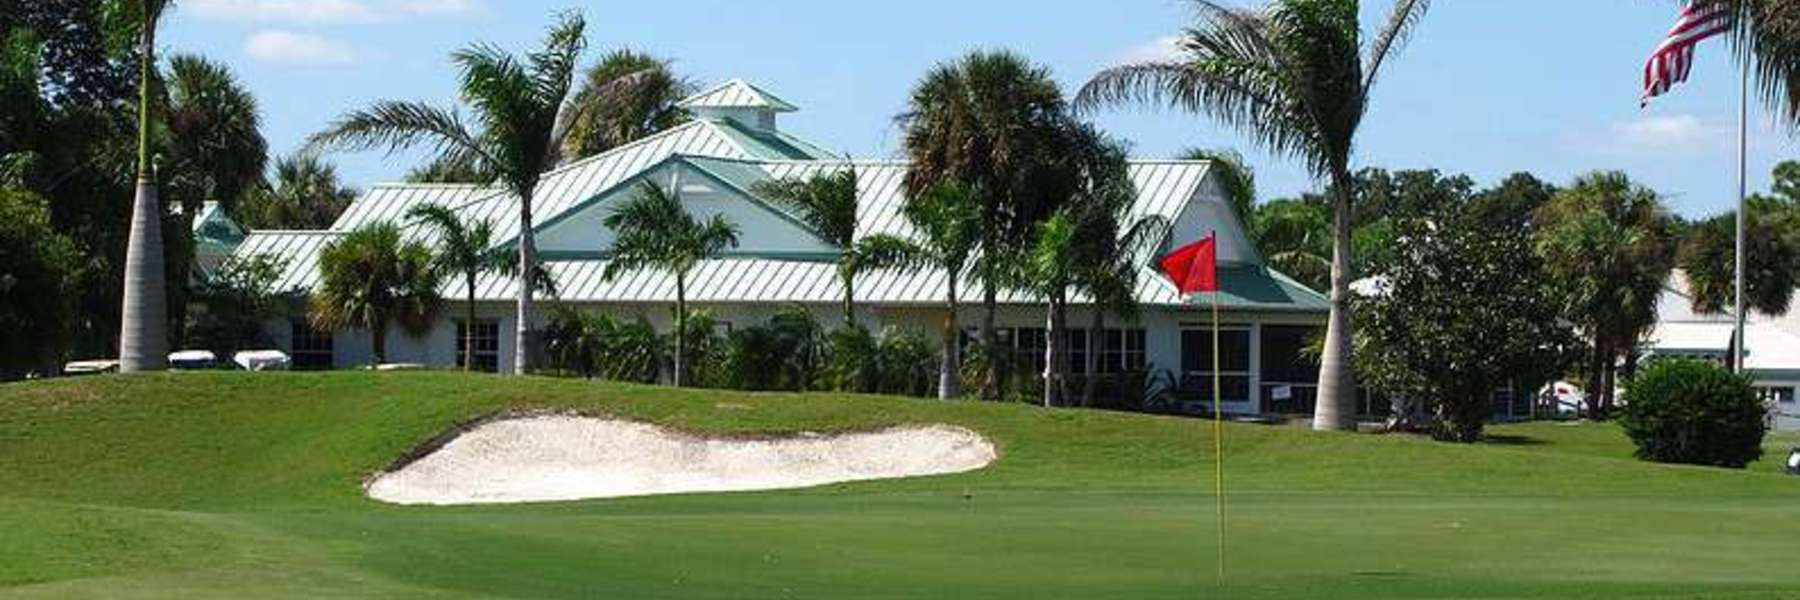 Golf Vacation Package - The Evergreen Club